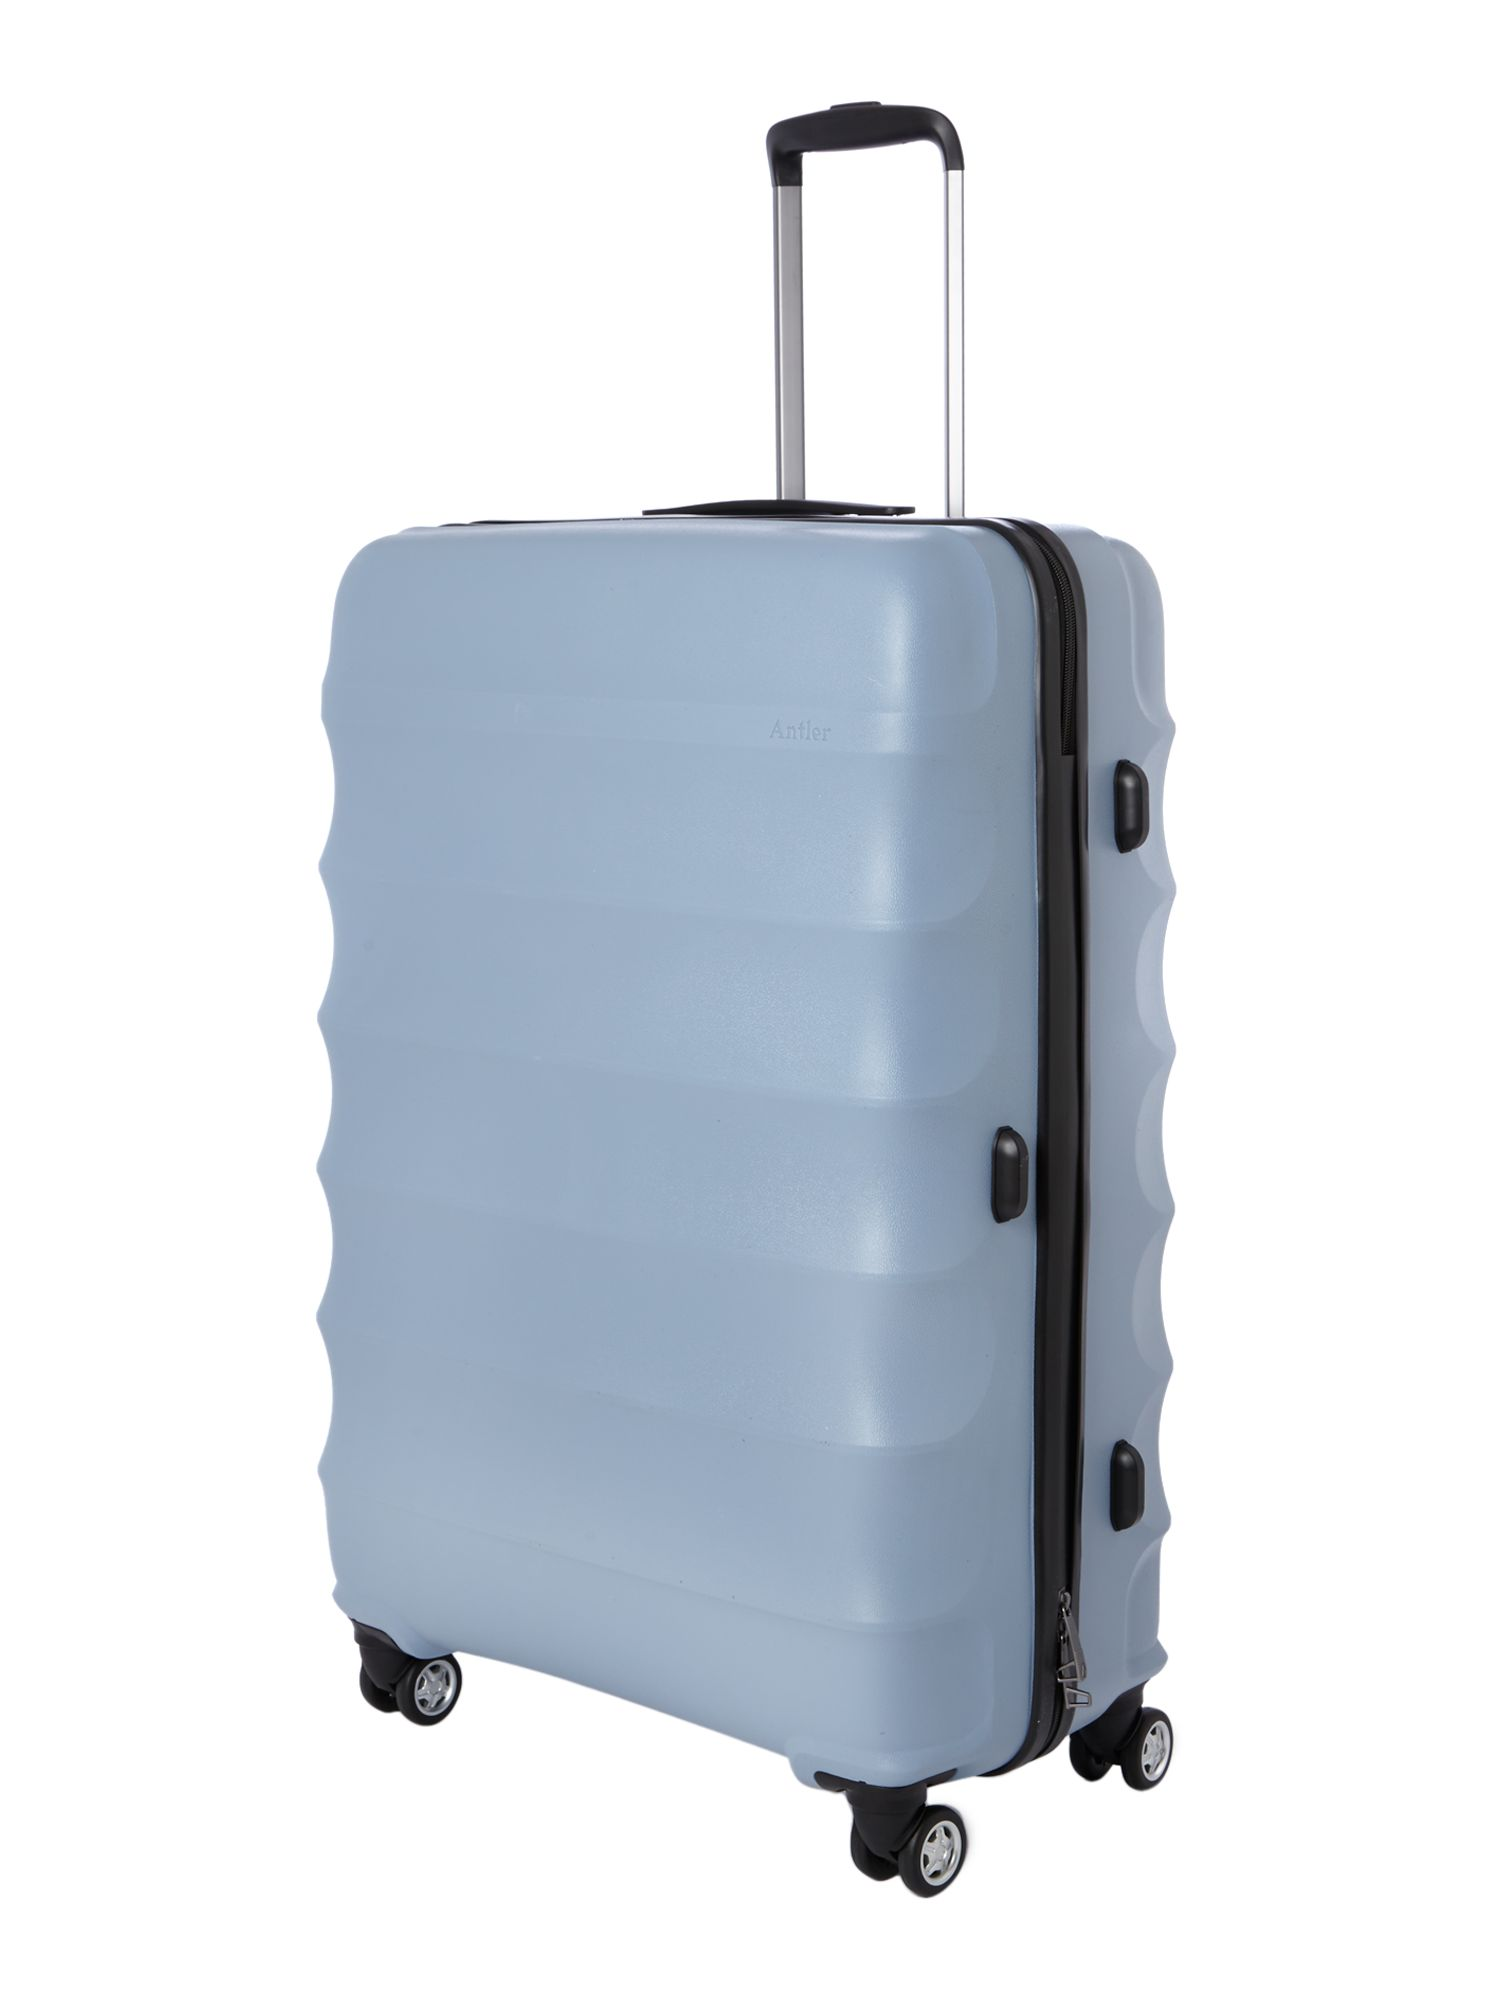 Juno 4 wheel pale blue hard large rollercase